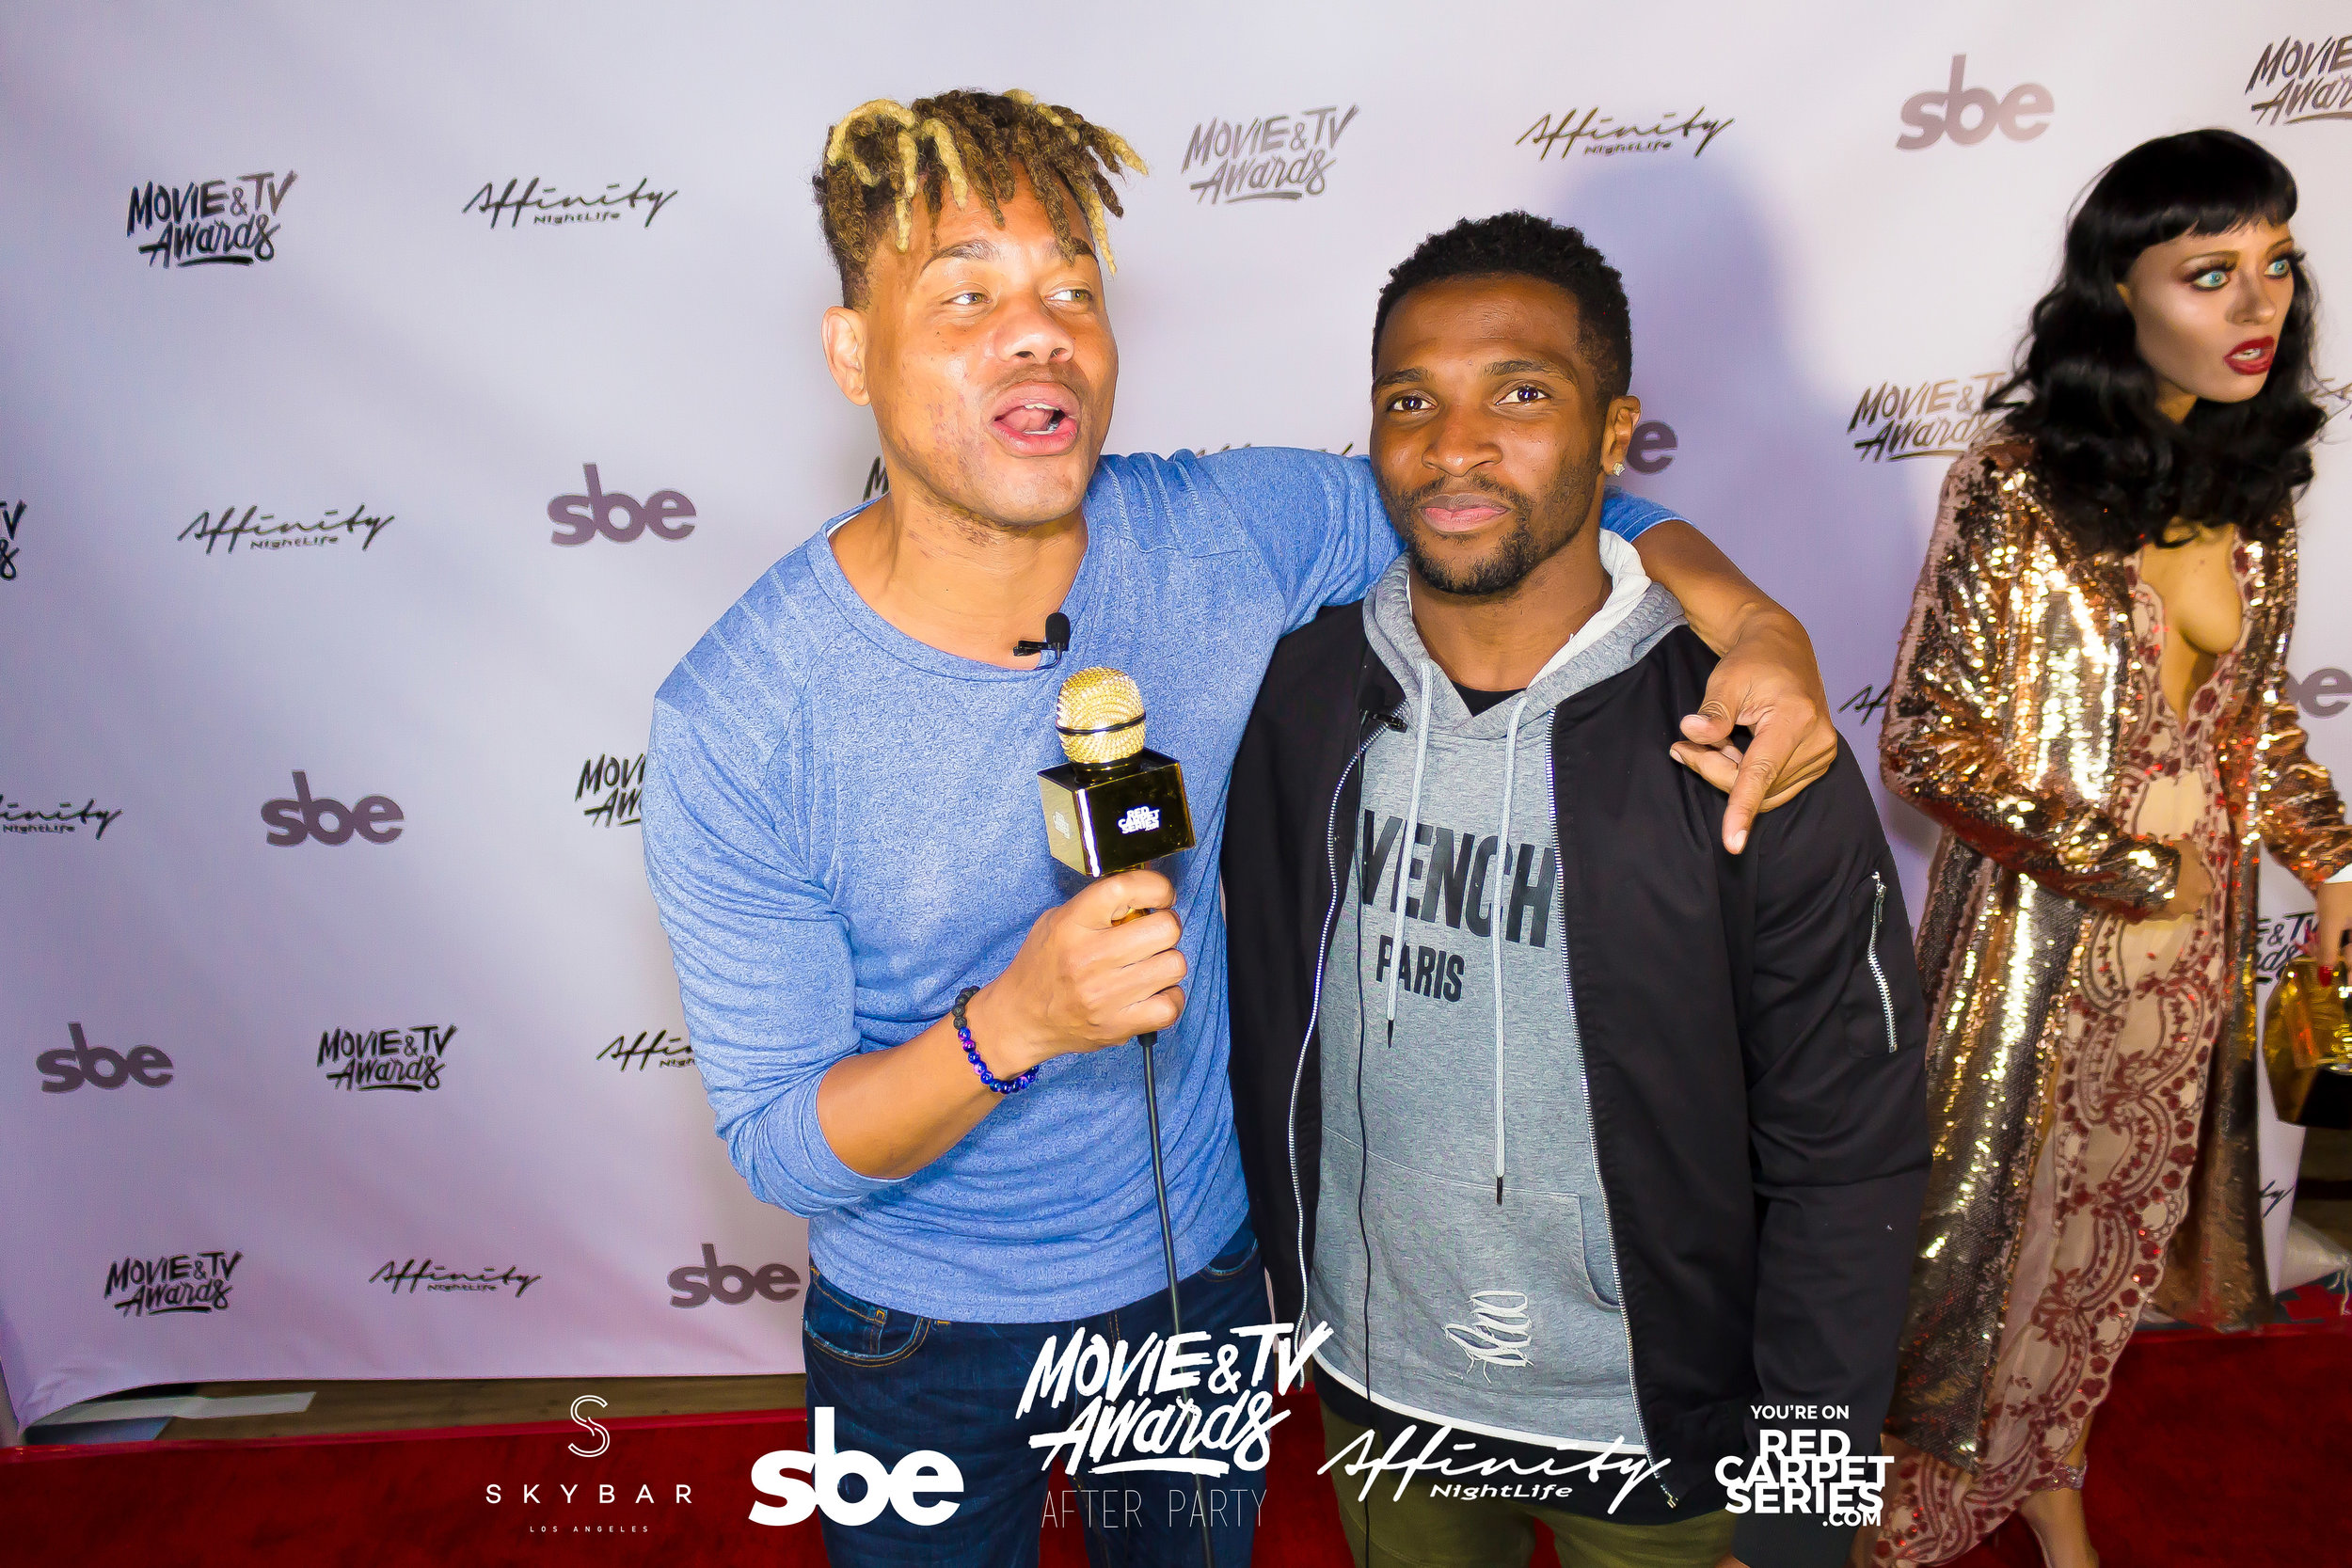 Affinity Nightlife MTV Movie & TV Awards After Party - Skybar at Mondrian - 06-15-19 - Vol. 1_160.jpg